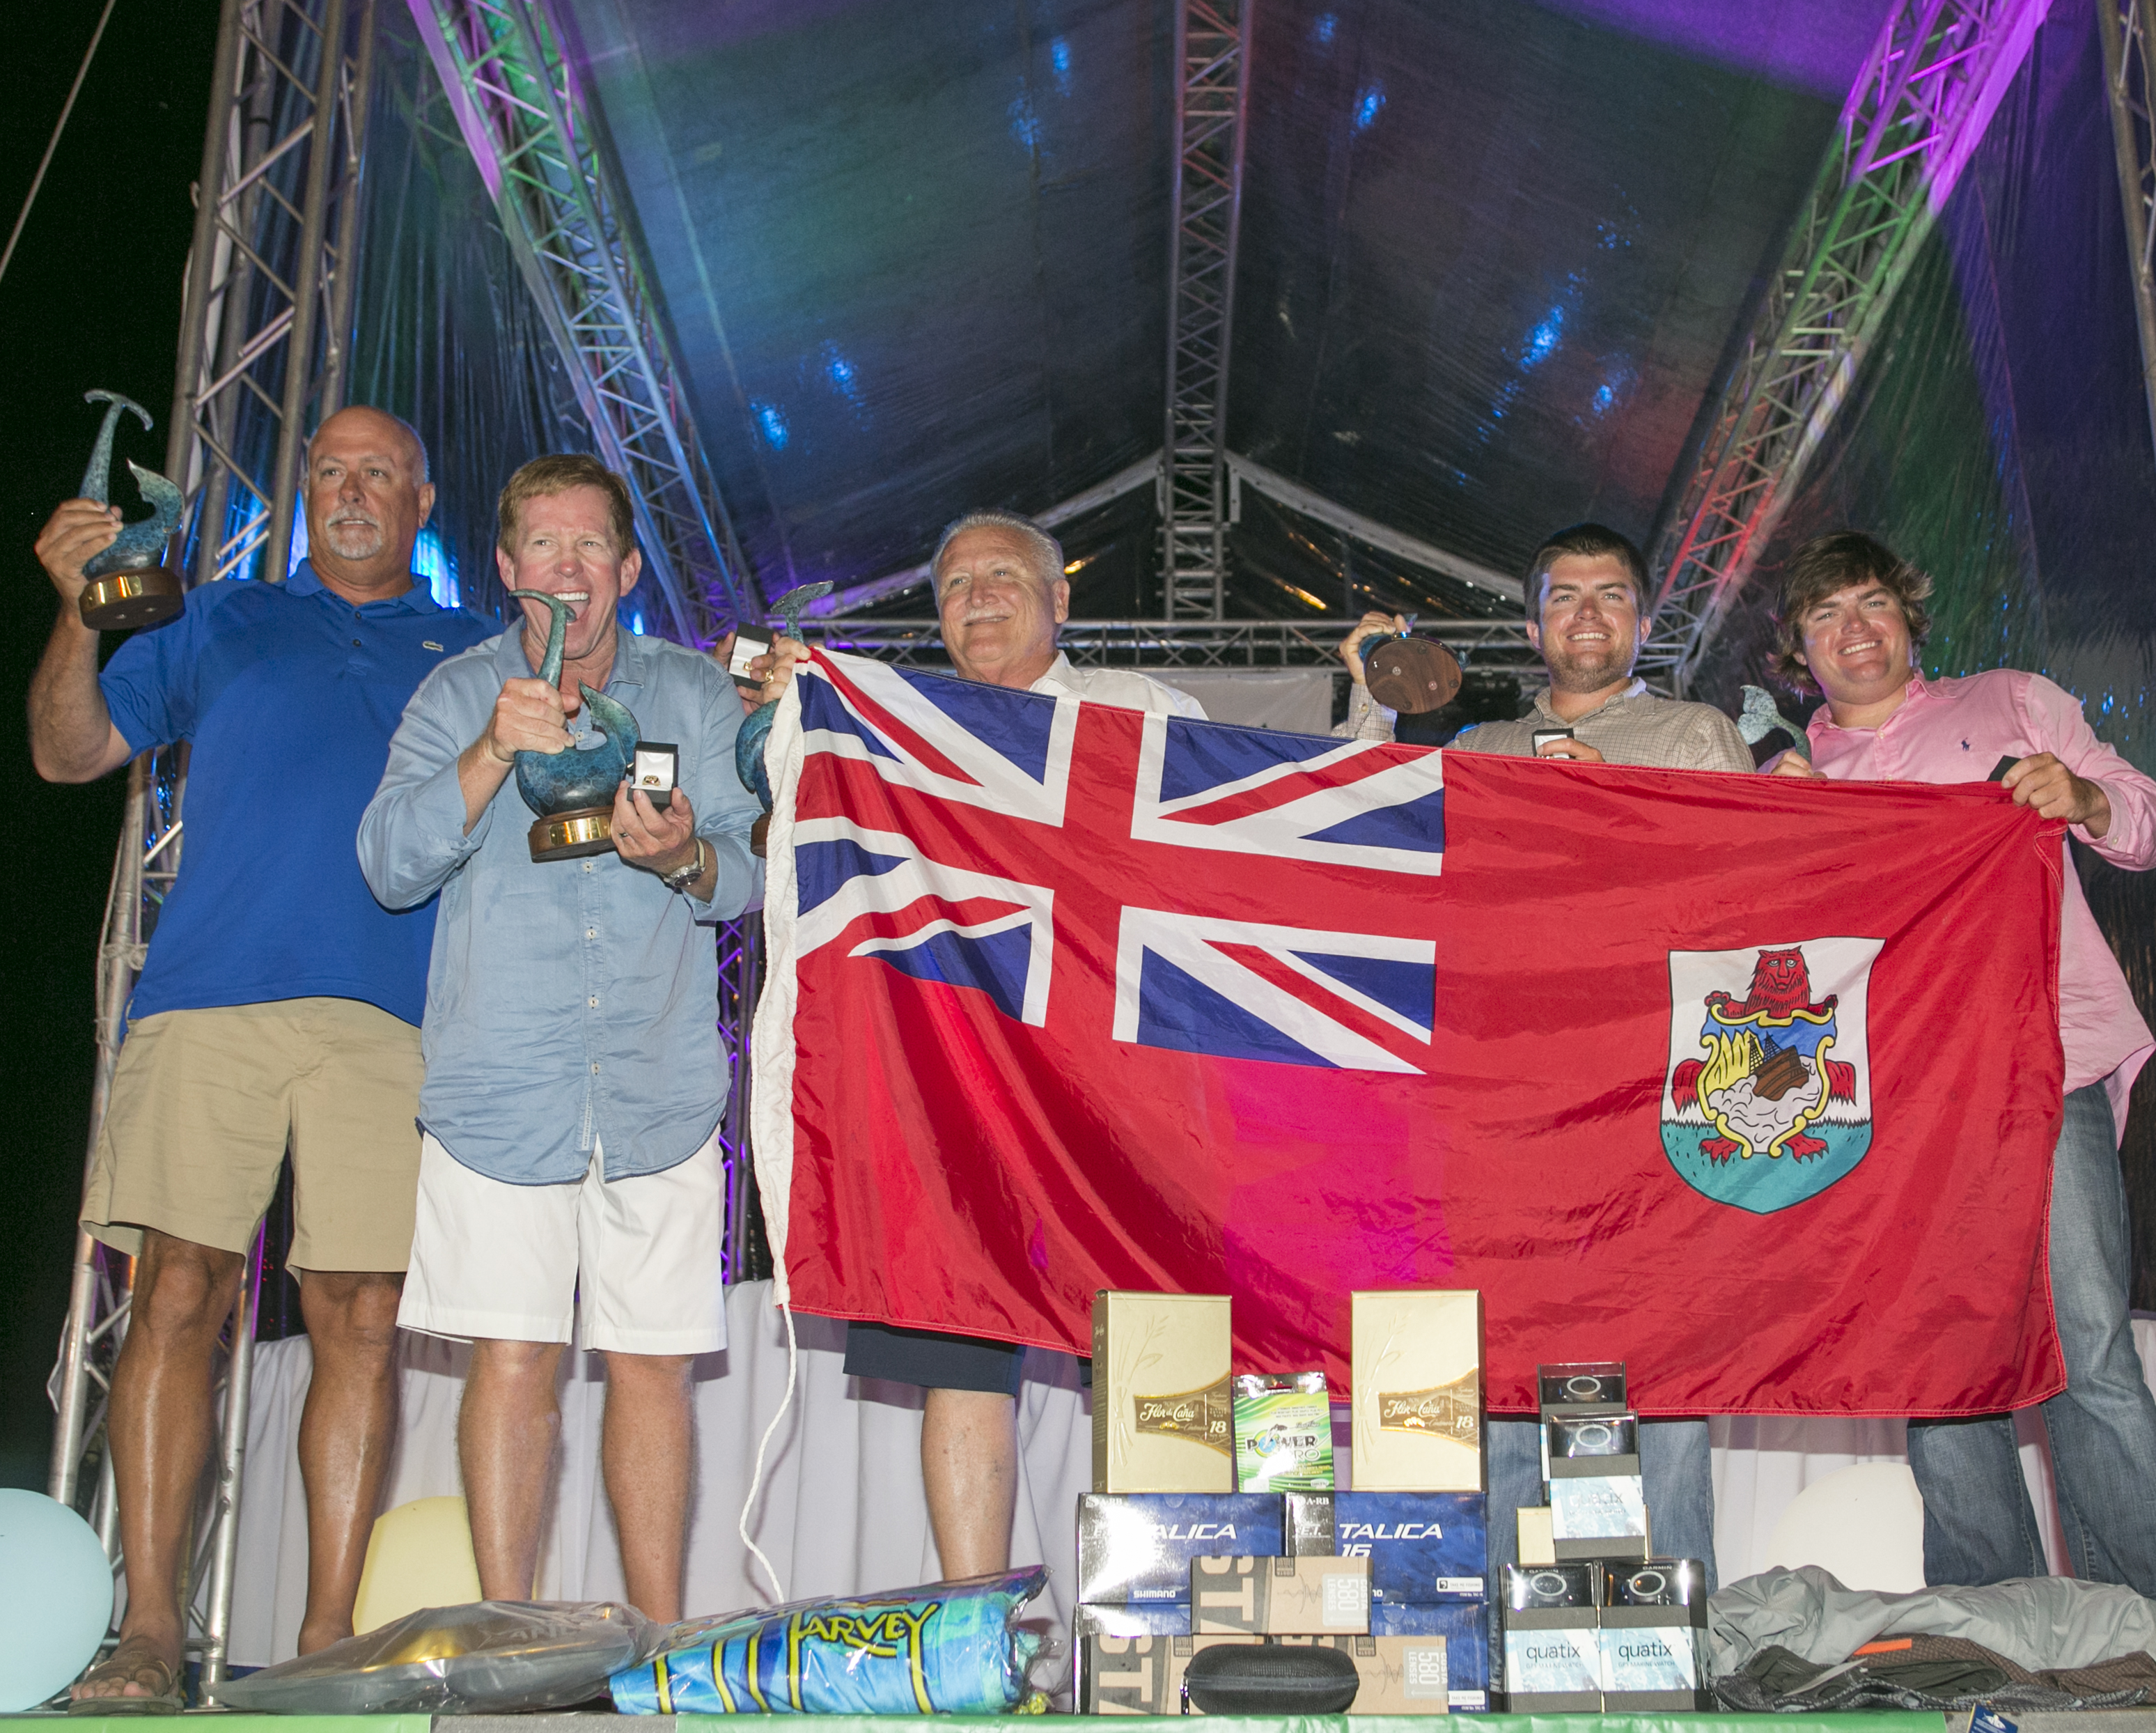 OWC 2015 Wrap Up – Official Media Release